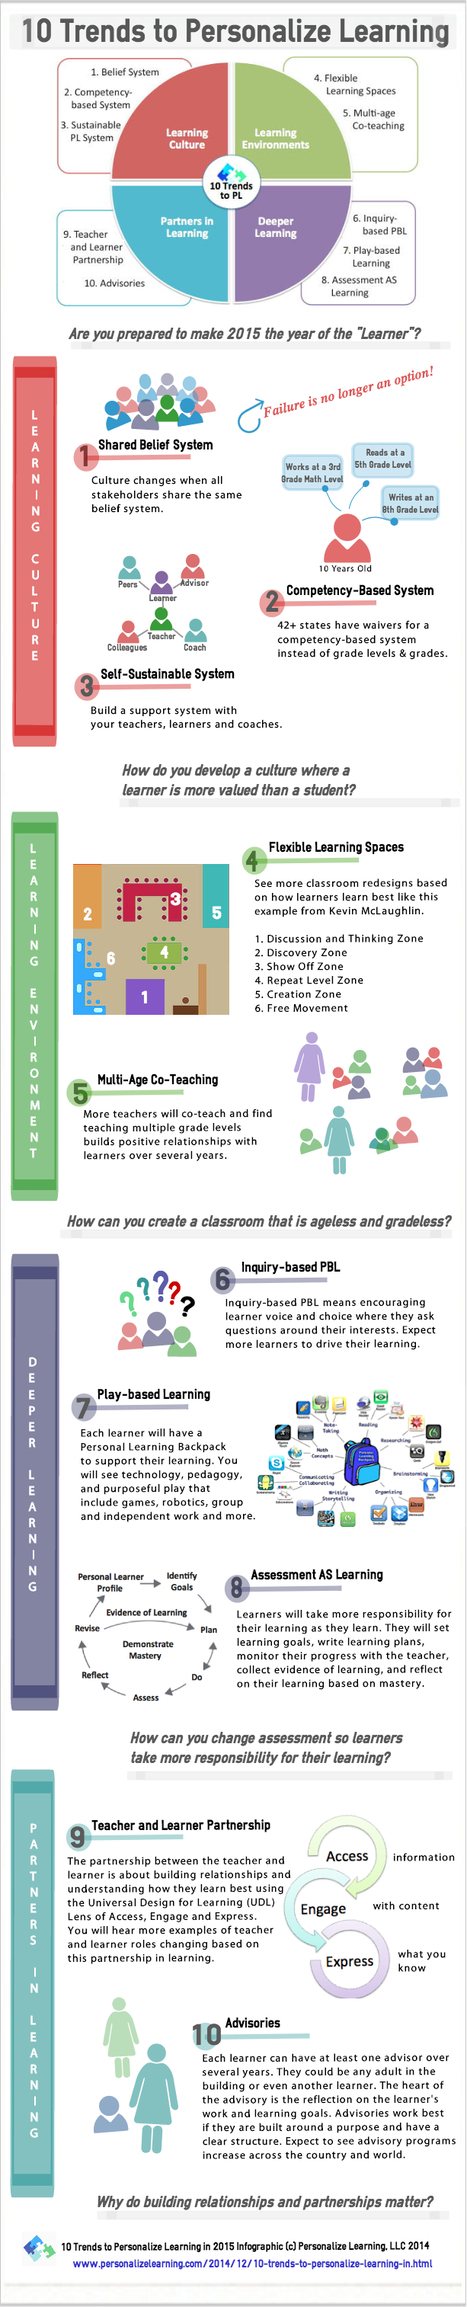 Infographic: 10 Trends to Personalize Learning in 2015 | Making Learning Personal | Scoop.it